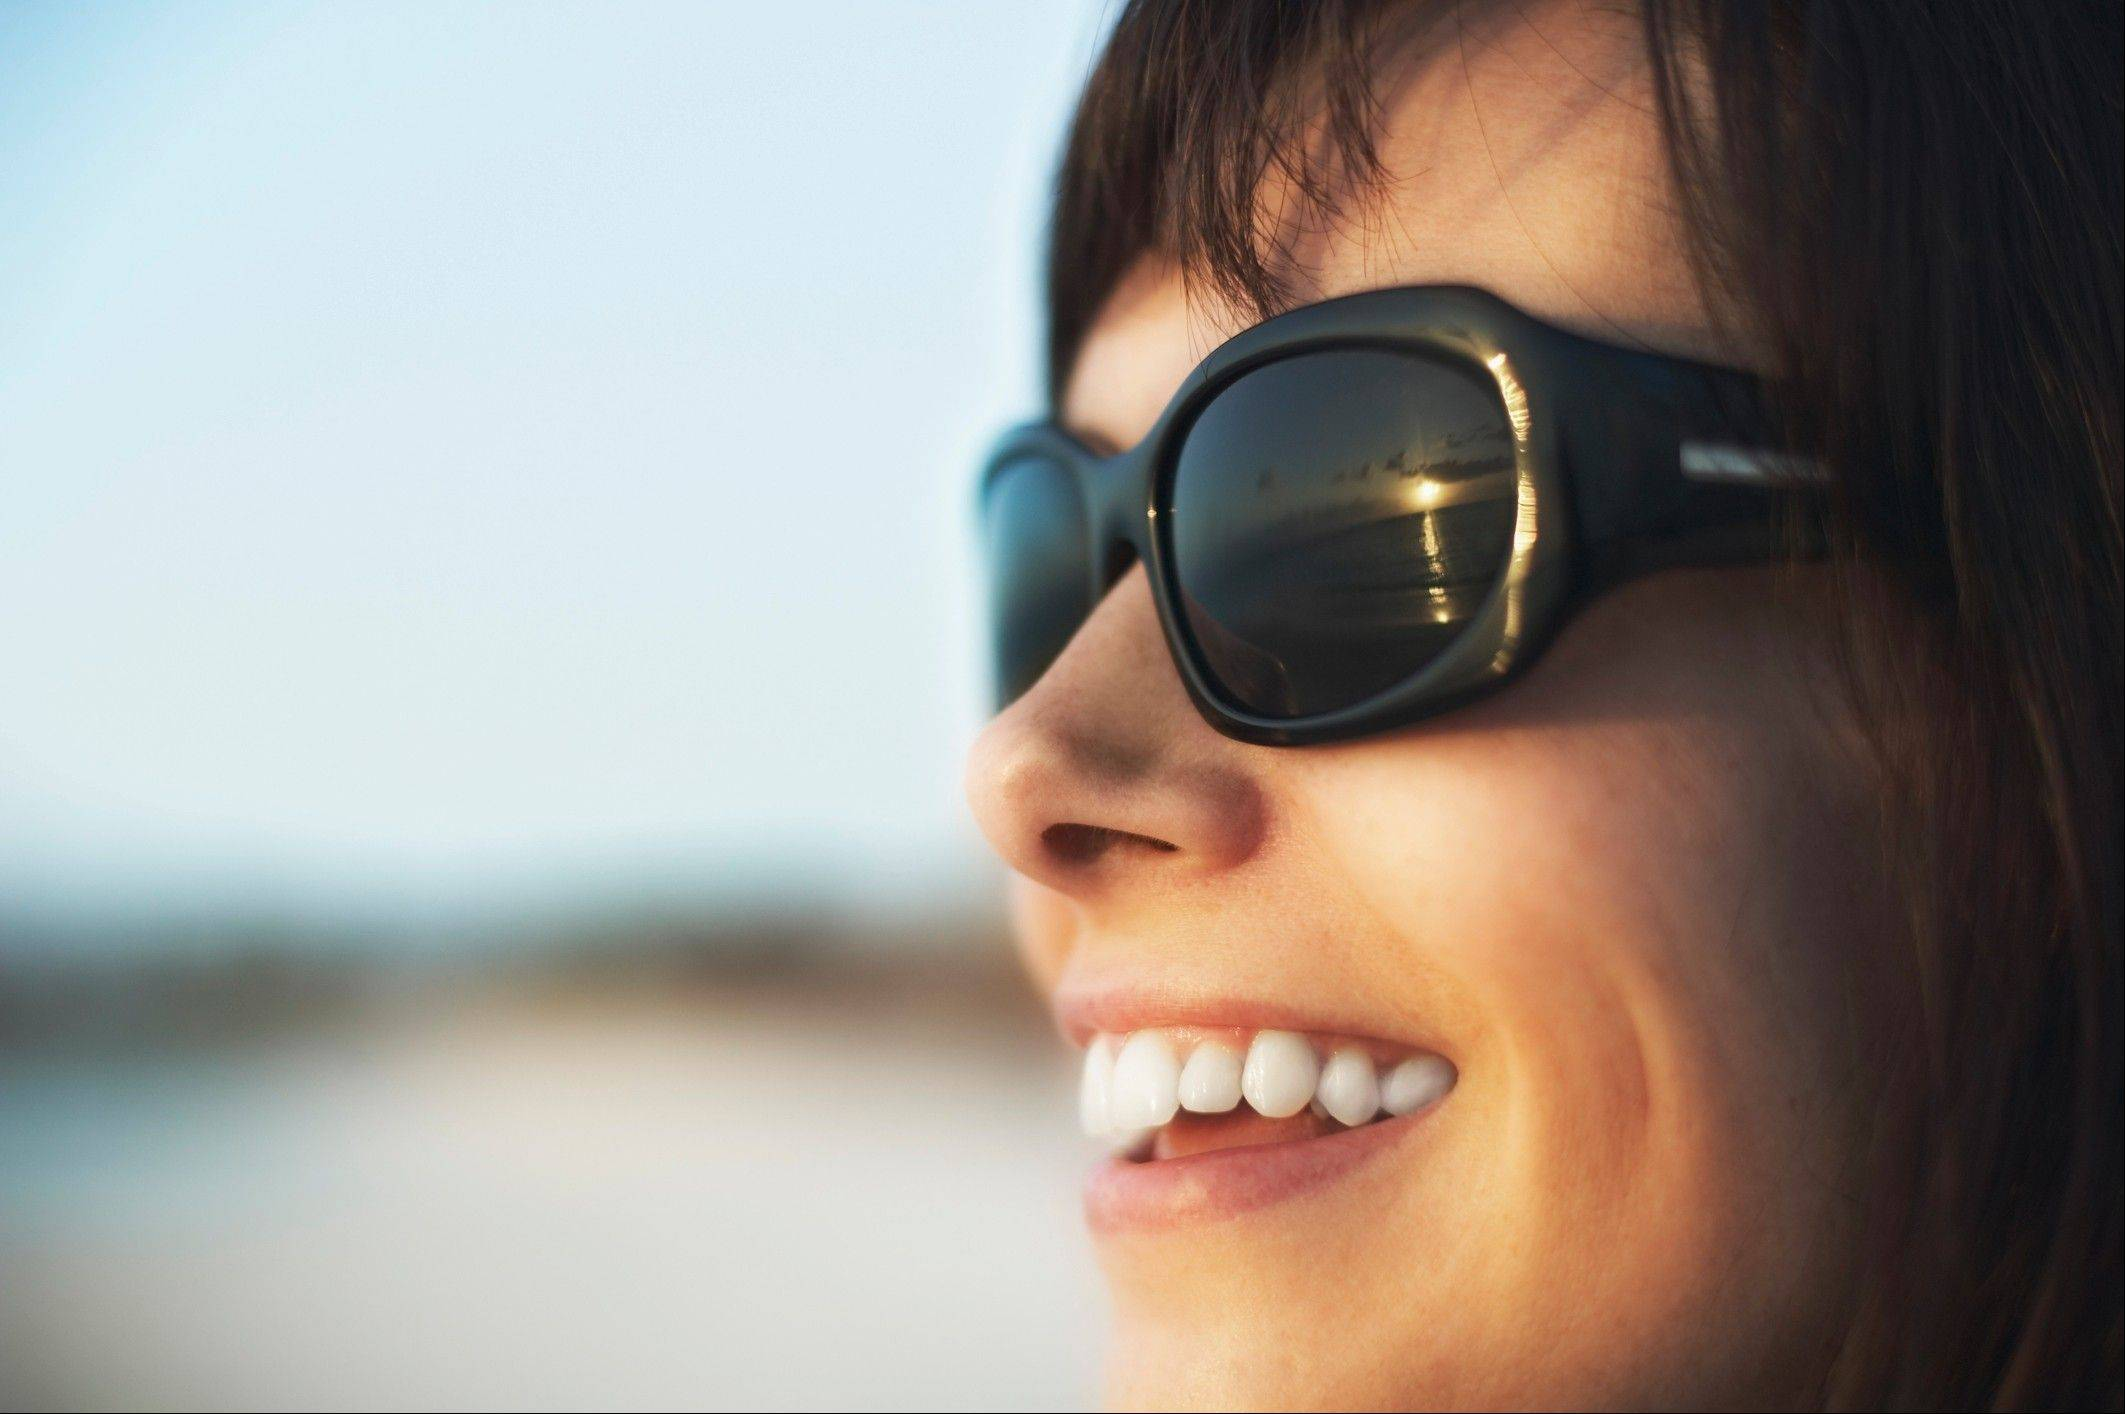 Choosing the right sunglasses can protect your eyes against serious sun damage.